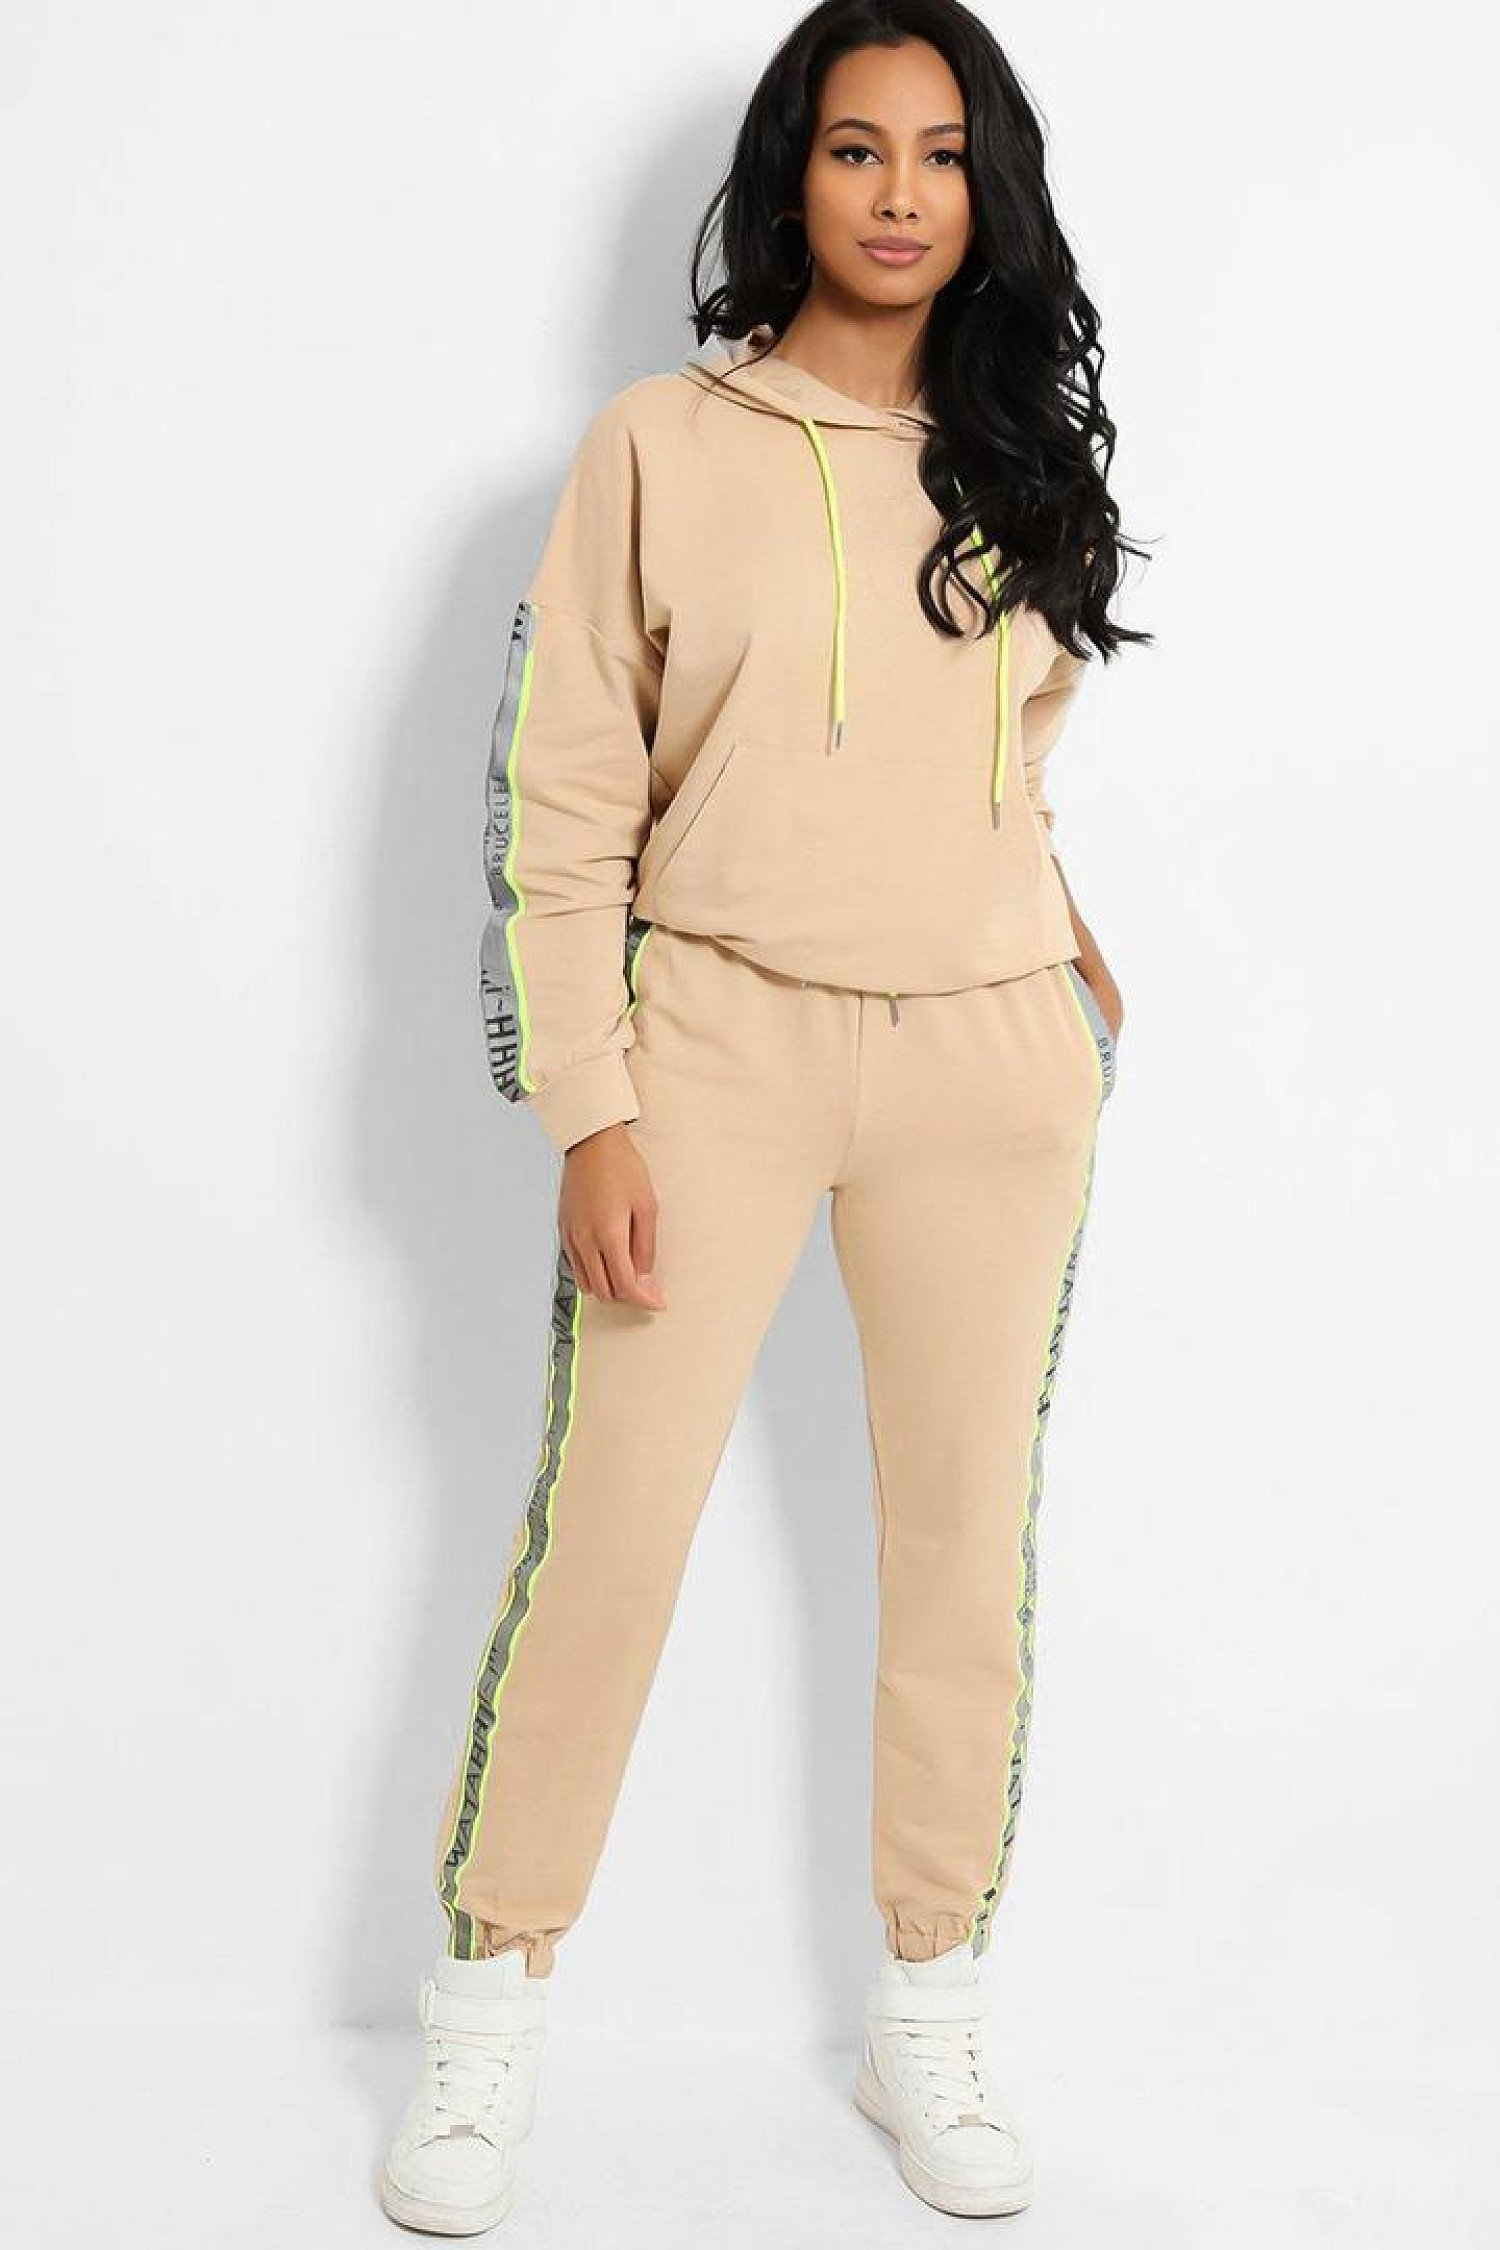 2 Piece Tracksuit Sizes 8-16 Free Postage